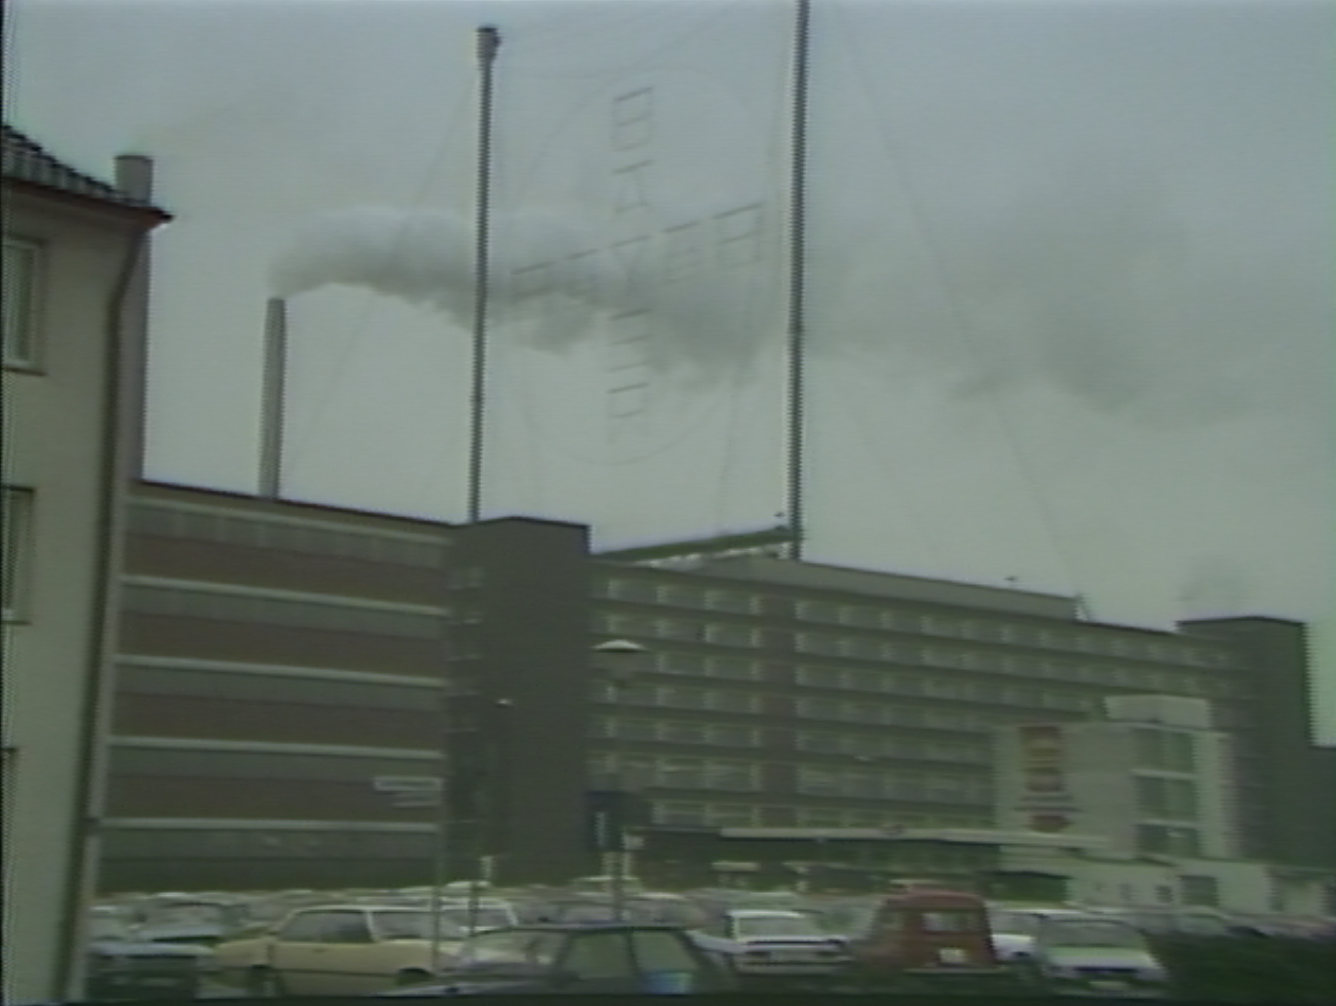 Screen grab of a WSJV segment about the Bayer Corporation plant in Elkhart, Indiana. July 1983.